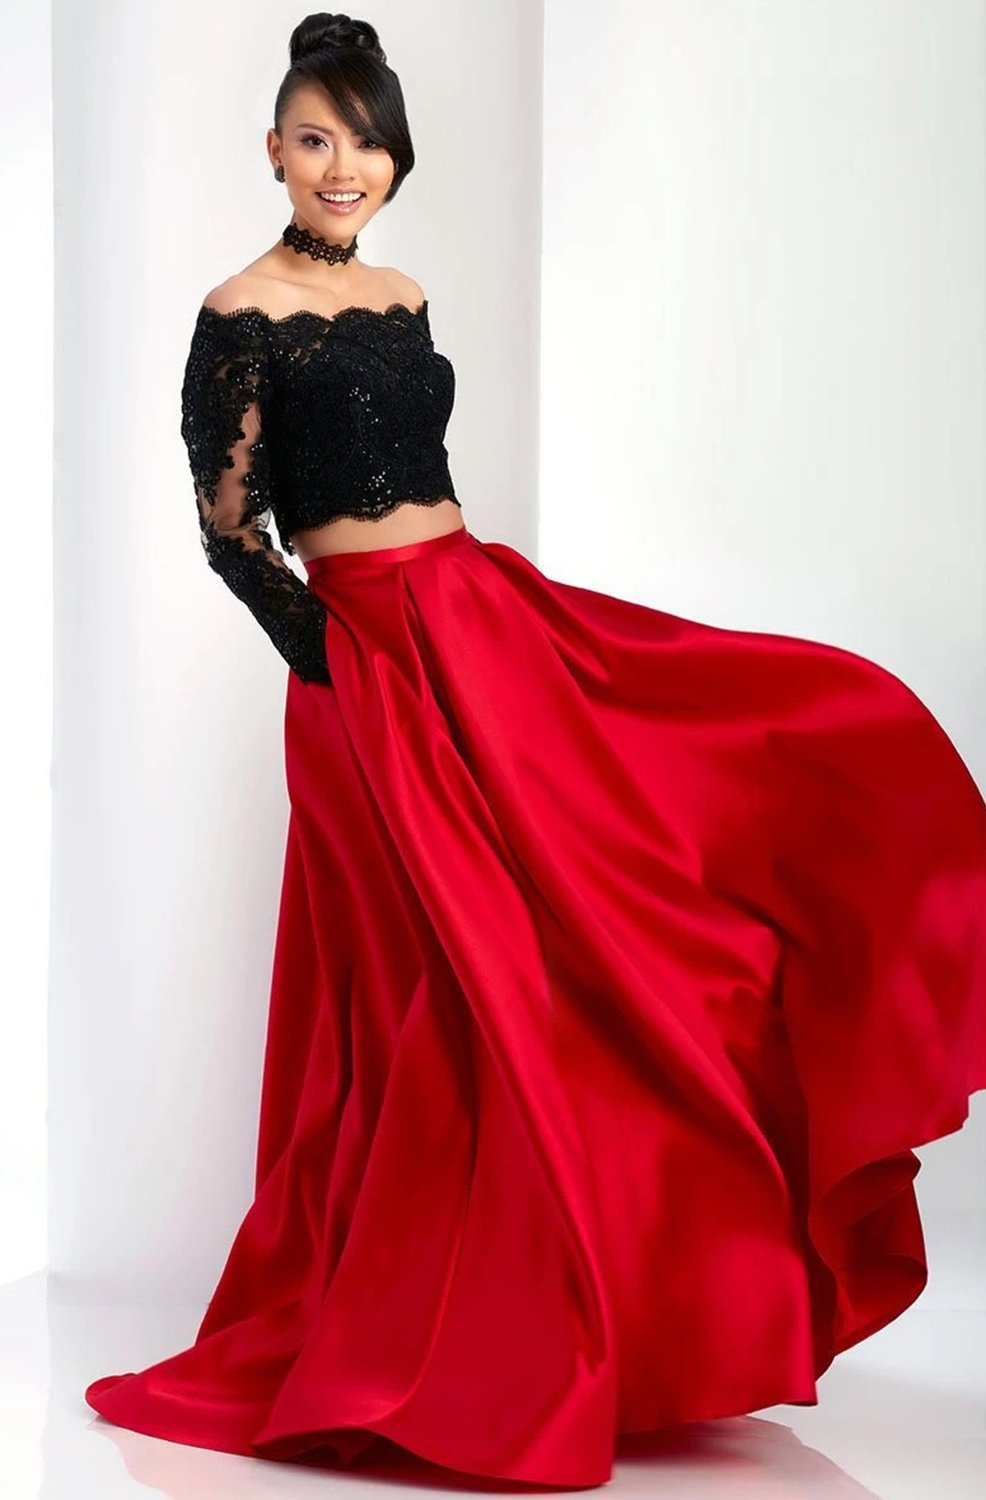 Clarisse - 3581 Two Piece Embellished Off-Shoulder Dress in Black and Red